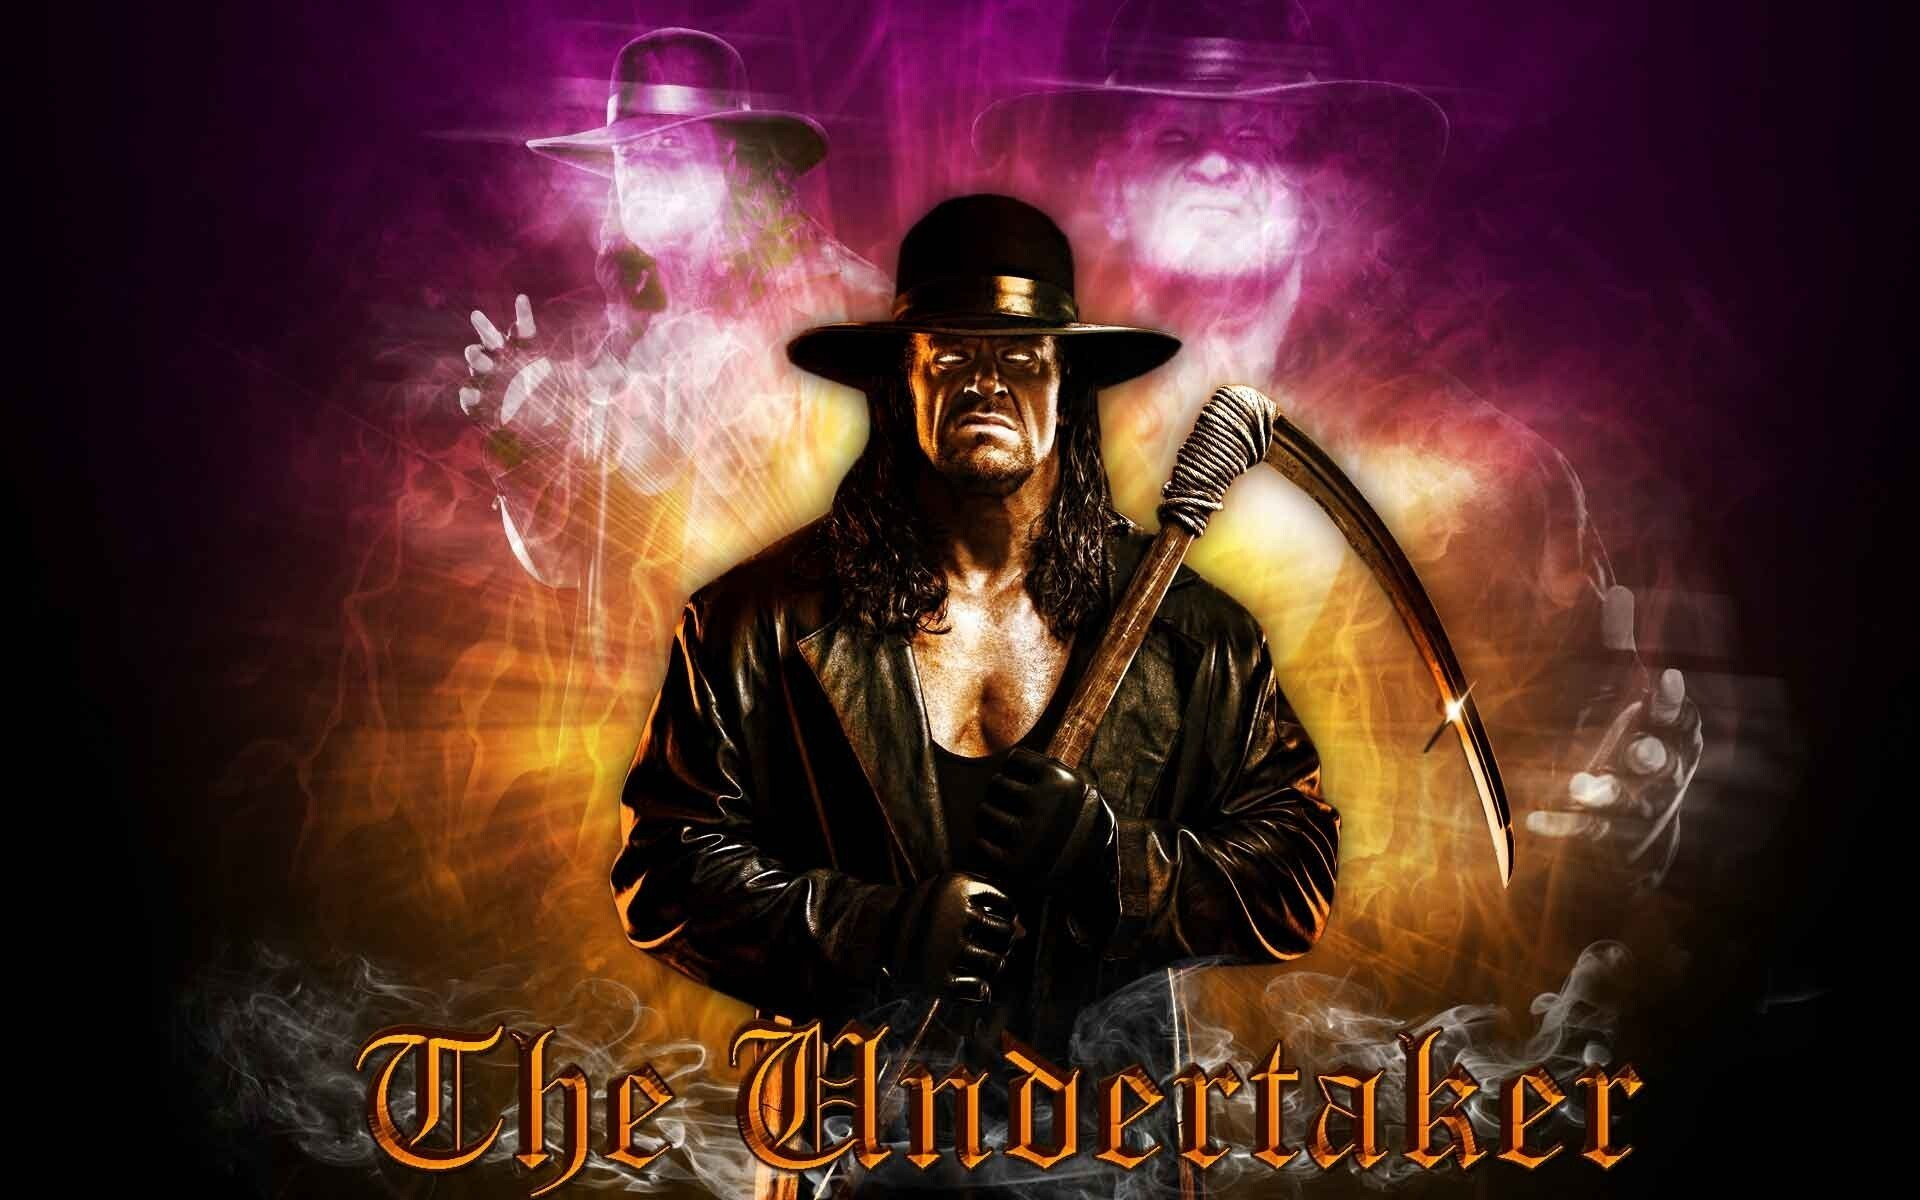 Free Download Undertaker In High Definition Quality Wallpapers For Desktop And Mobiles HD Wide 4K 5K Resolutions